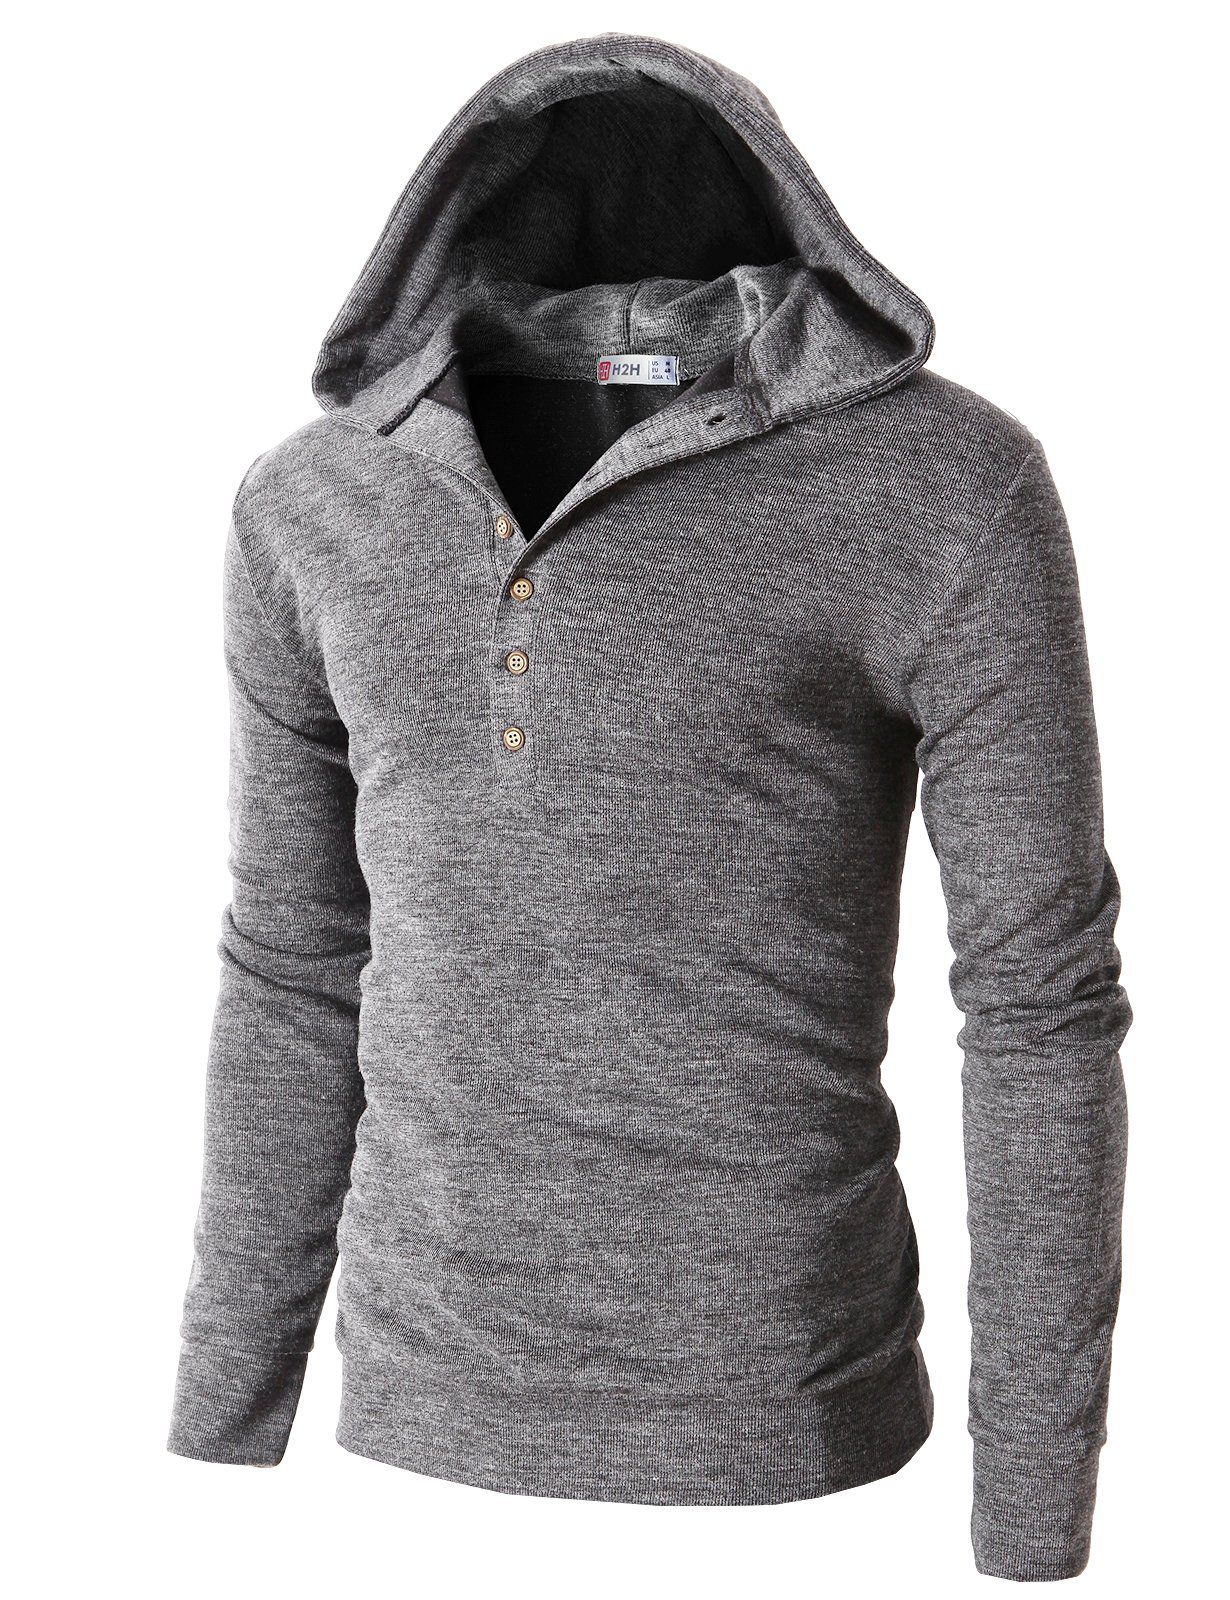 H2h Mens Casual Slim Fit Hooded Henley T Shirts With Button Pointed Gray Us M Asia L Kmohol023 At Amazon Men S Clothi Slim Fit Hoodie Men Casual Mens Outfits [ 1600 x 1230 Pixel ]